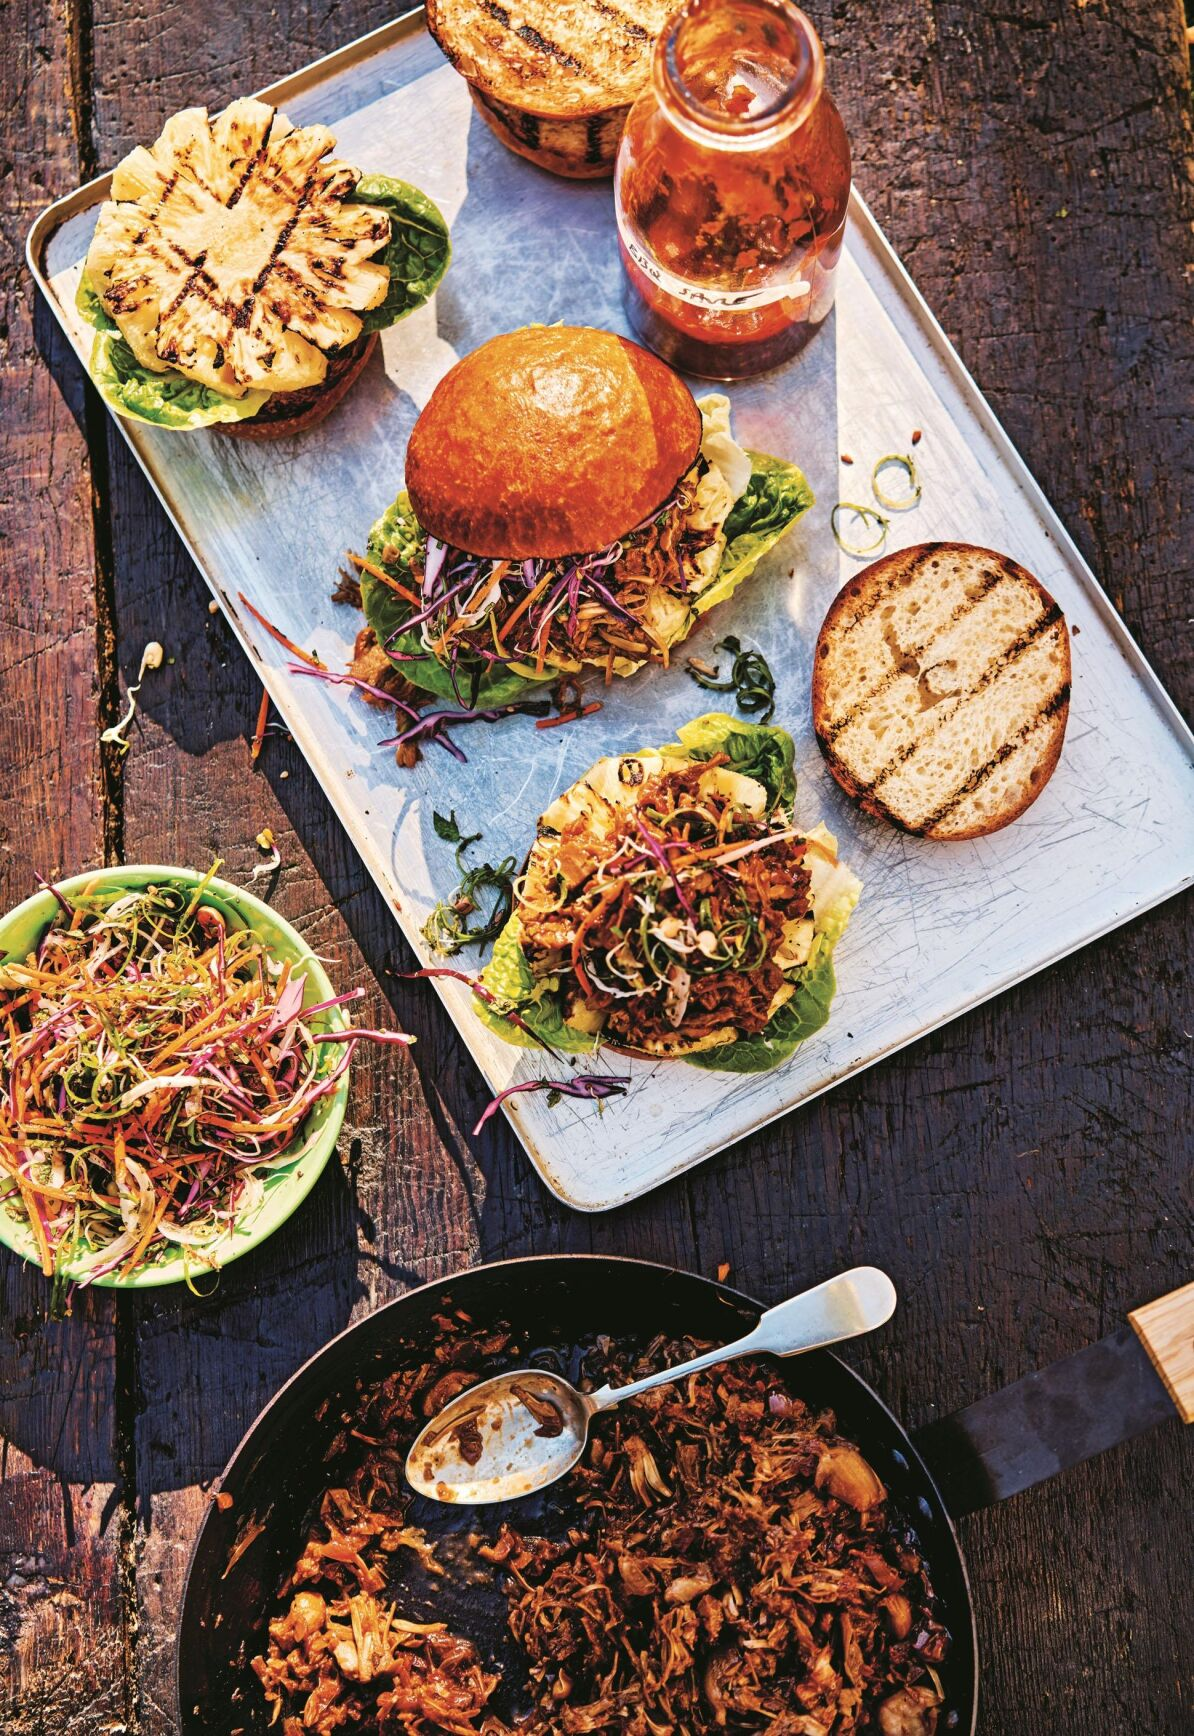 Stephen Fries: Vegetables are the star of these barbecue dishes